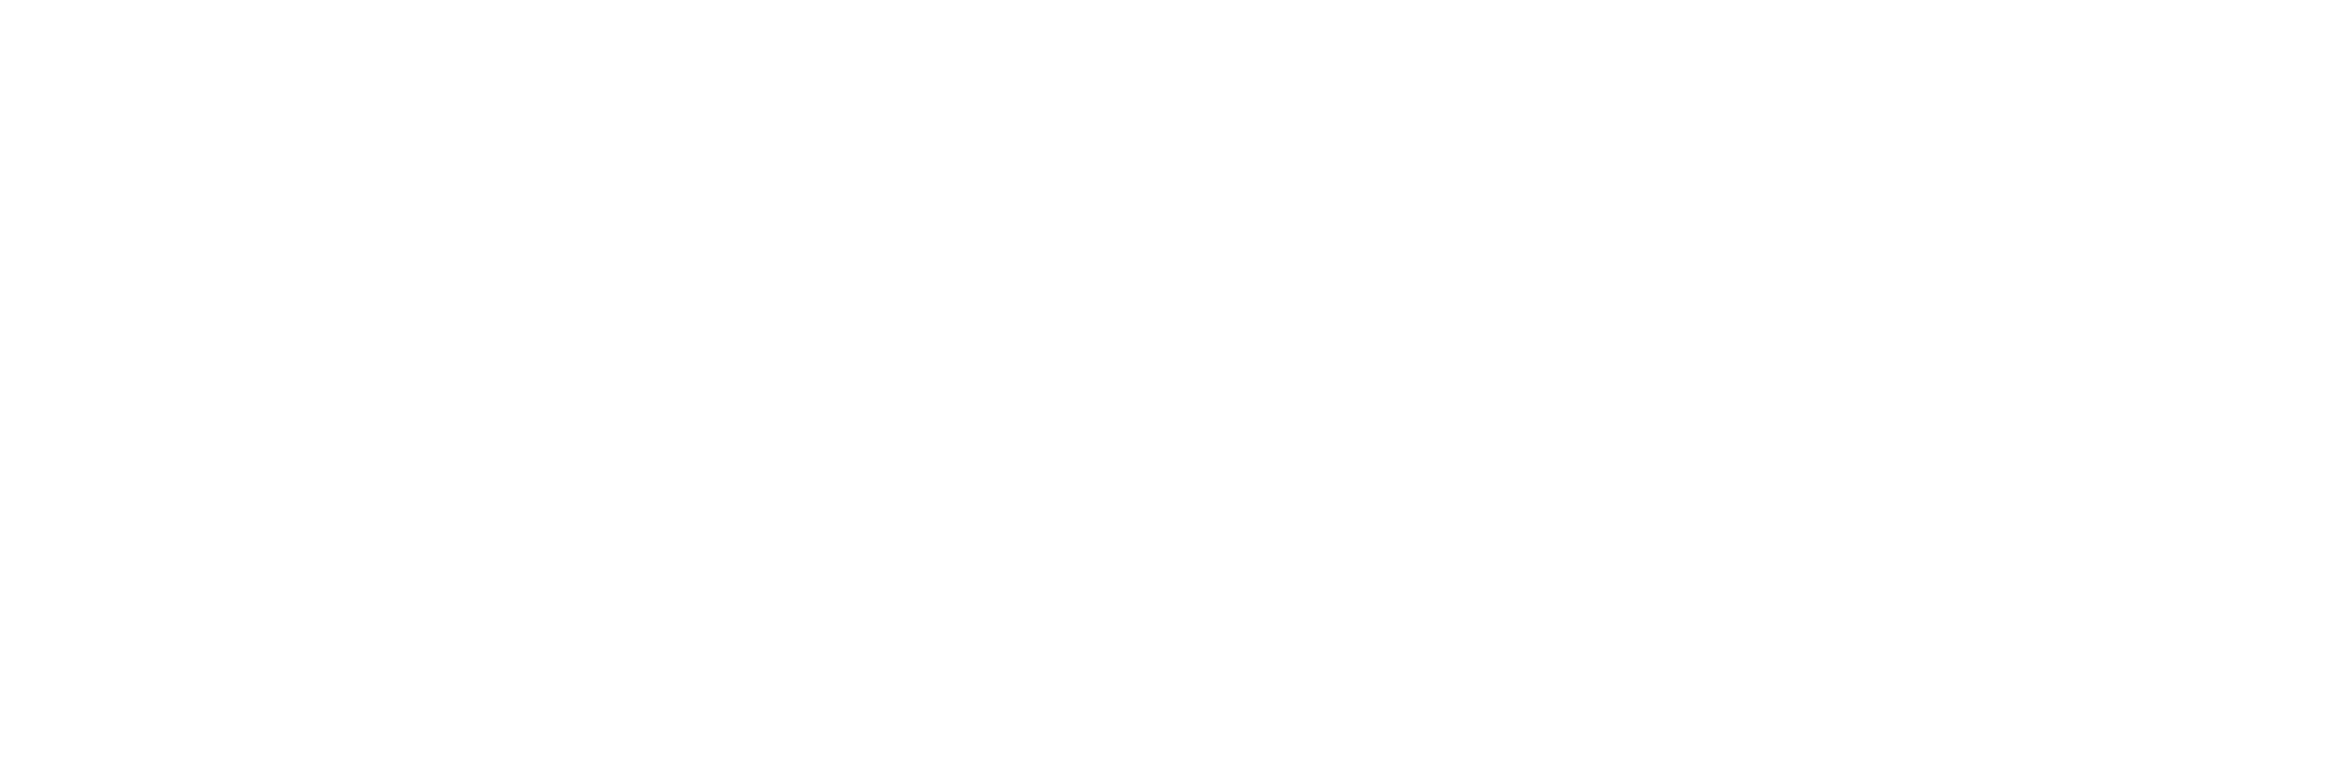 8216_Feed_Mill_Coffee_Company_VC_RM_logo-06.png